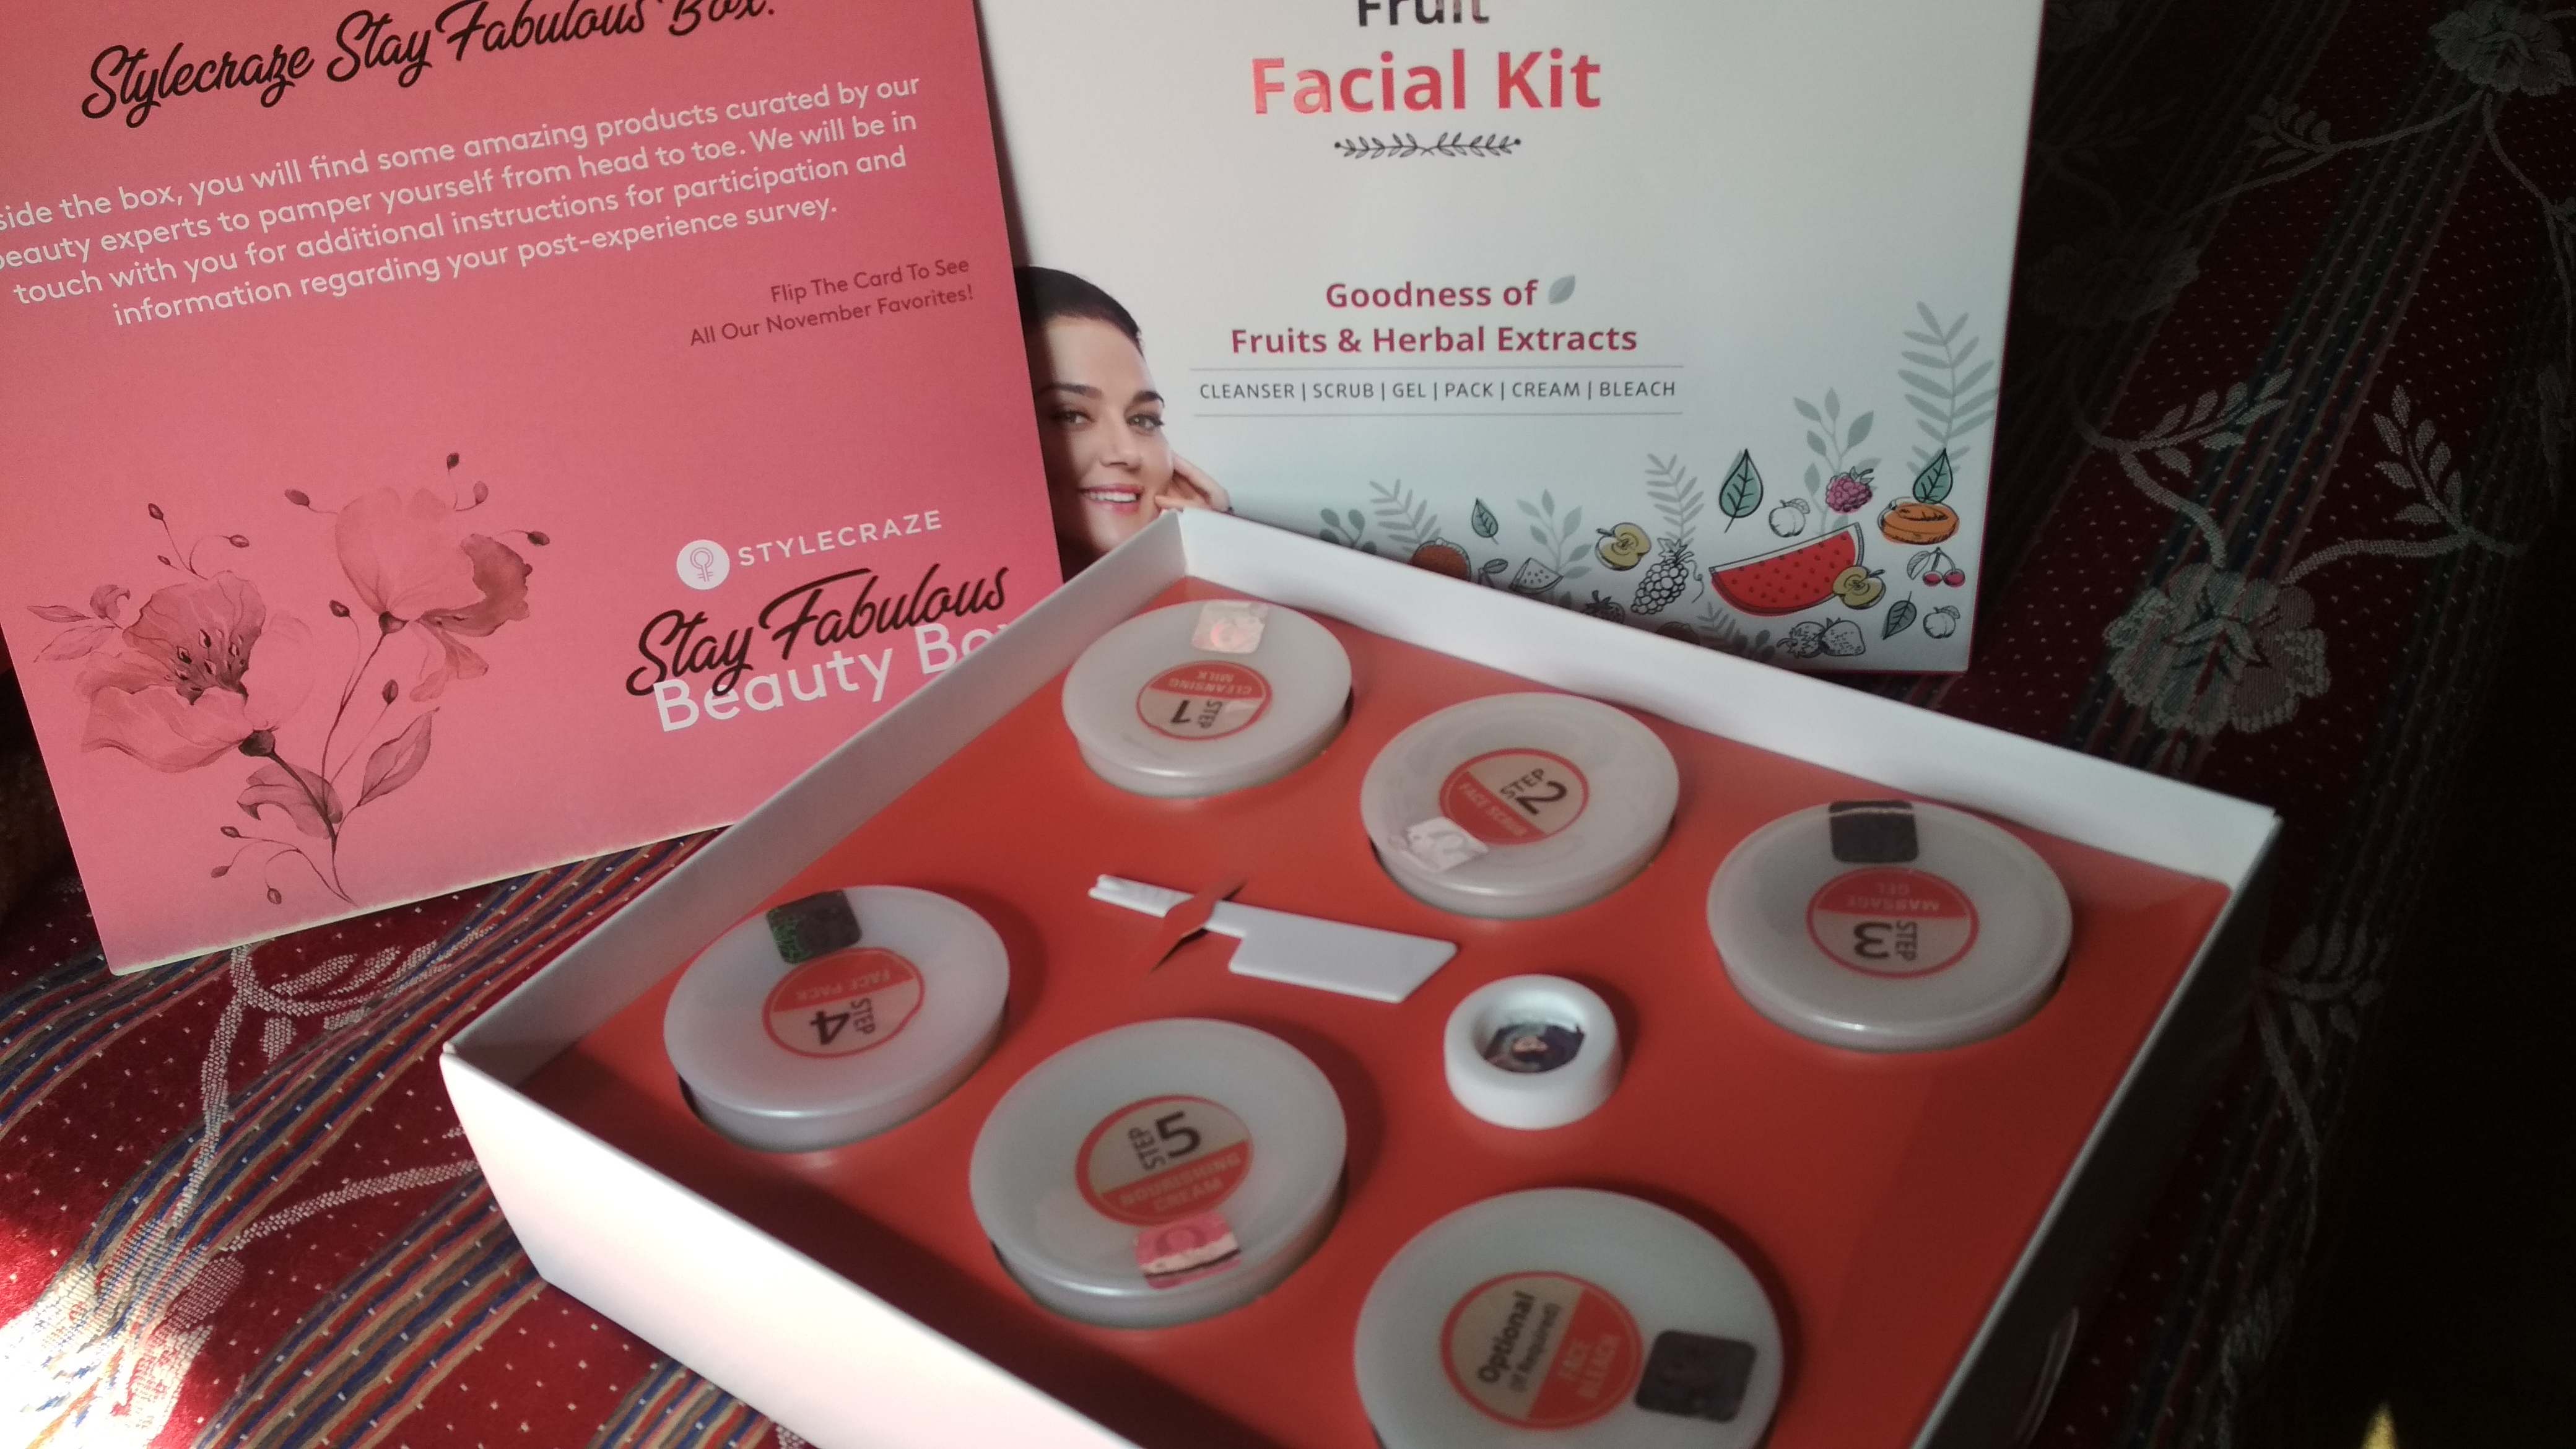 fab-review-Roop mantra fruit facial kit-By mitshu98